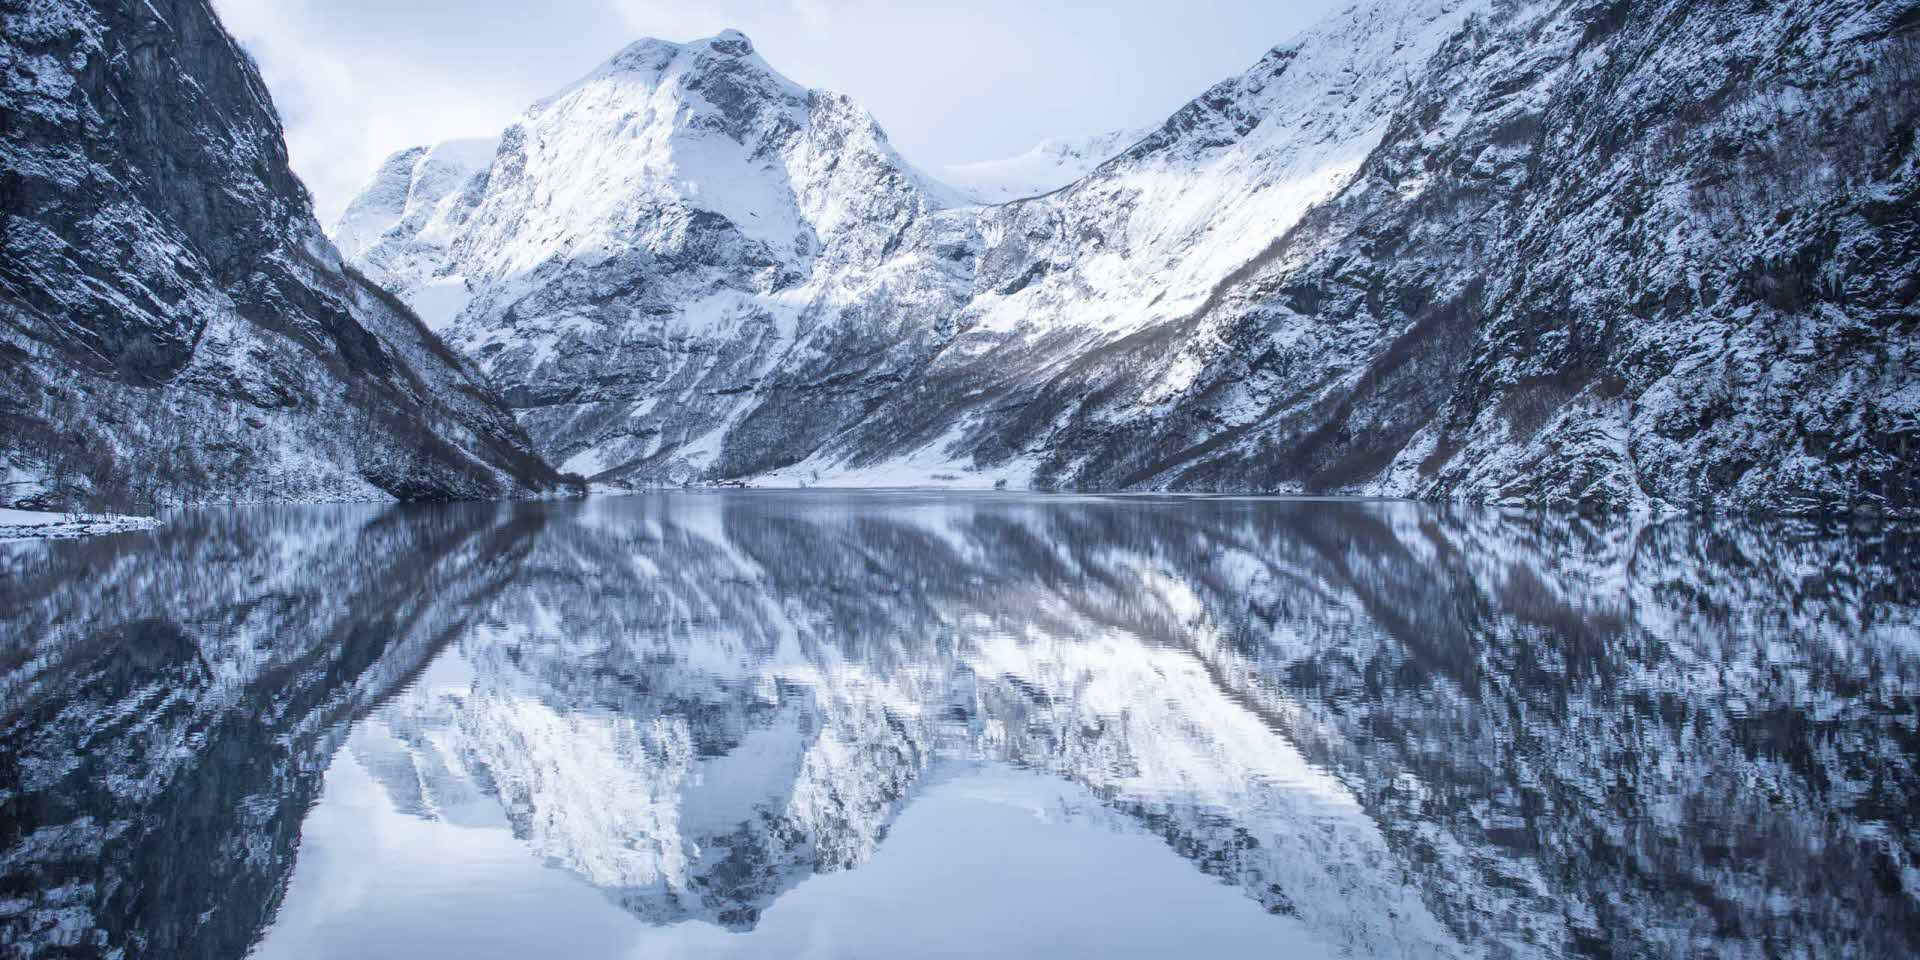 Nærøyfjord in winter with snow clad peaks and still fjord